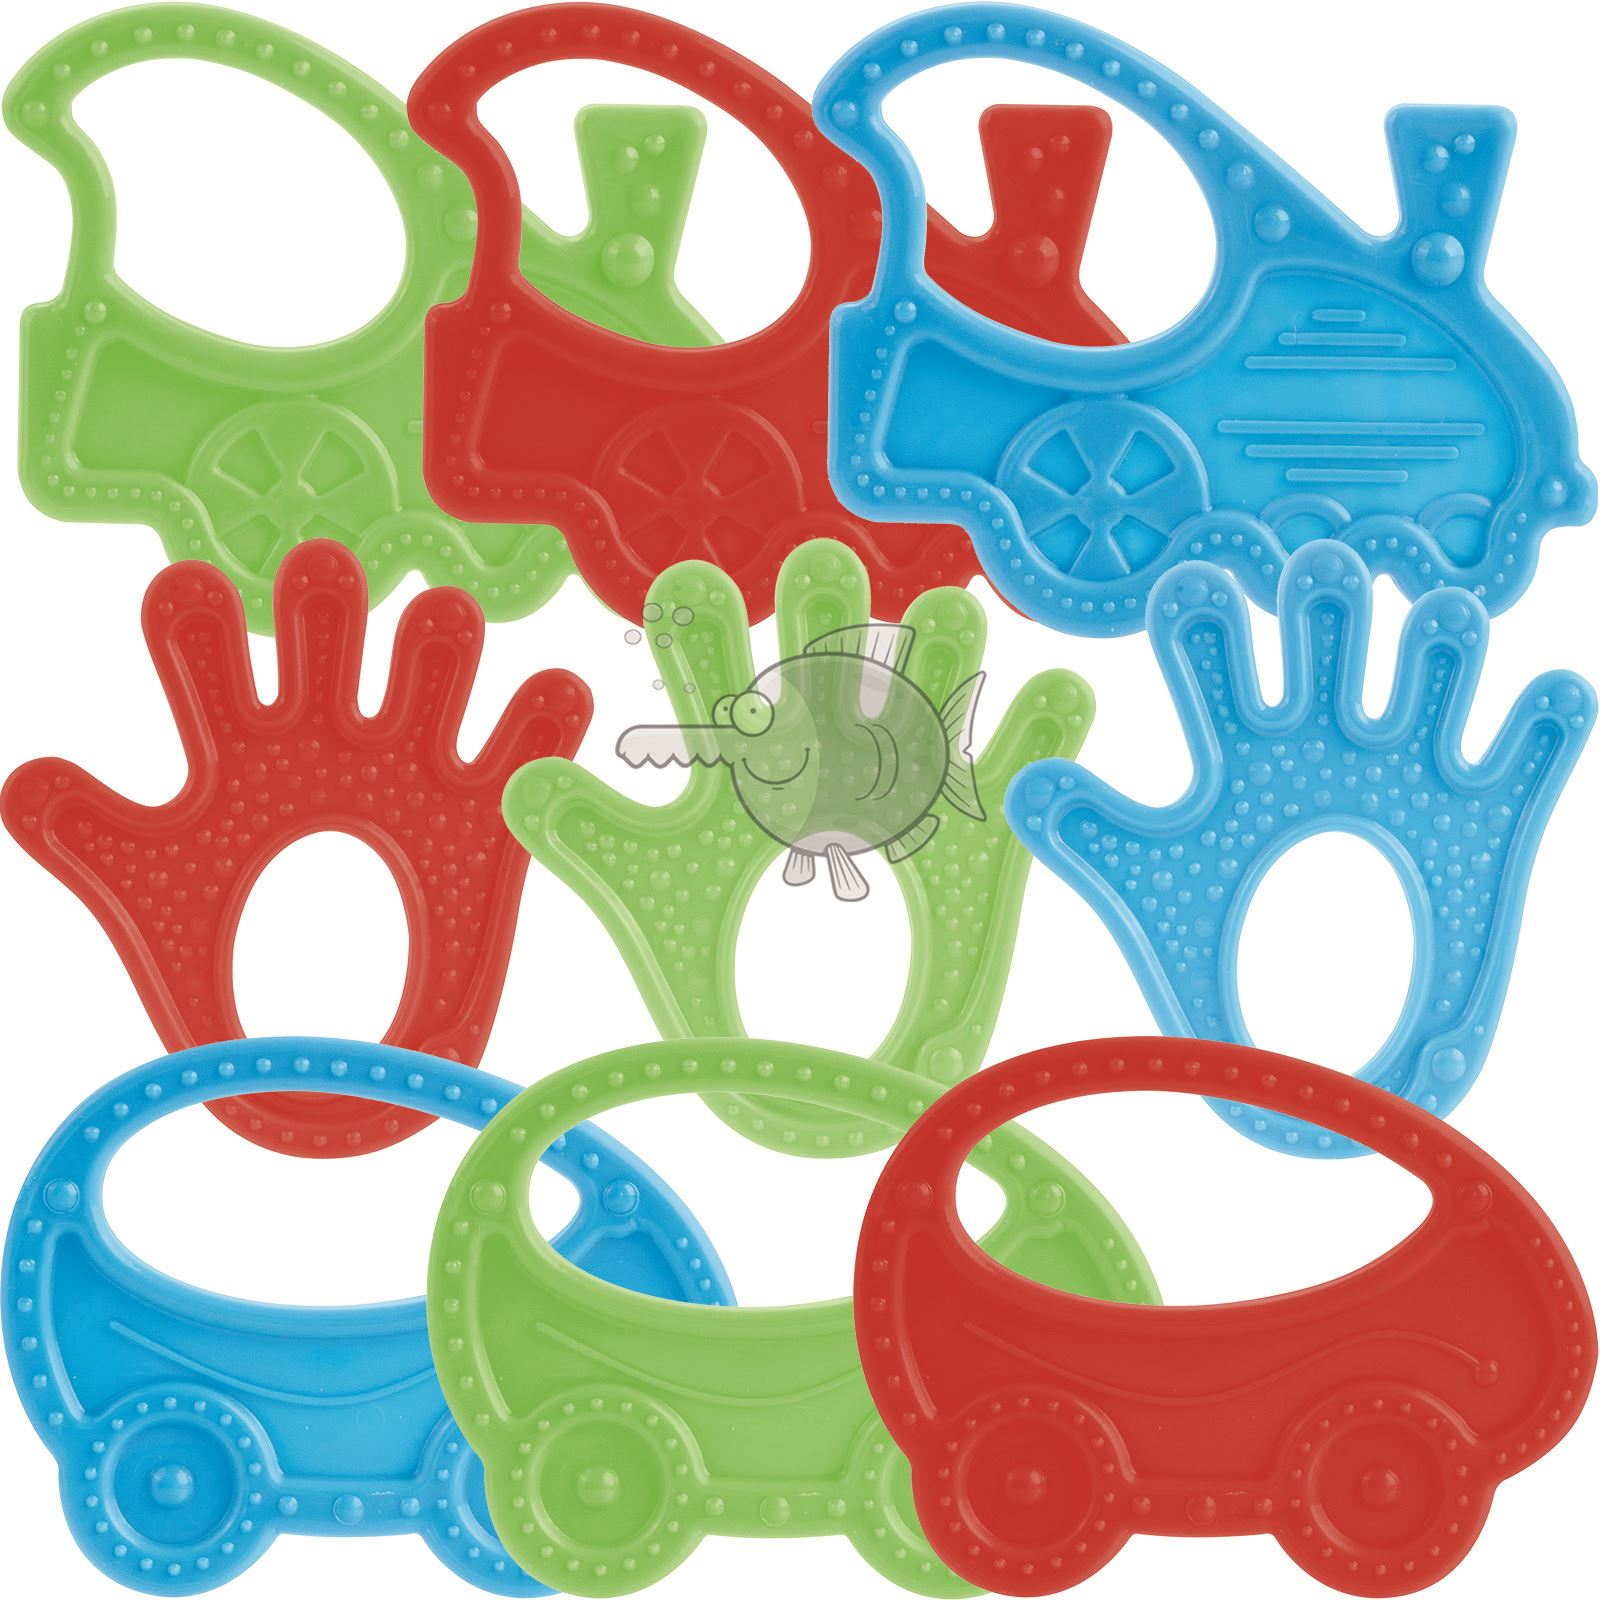 NEW Baby Silicone Teether Soothing Toy Teething Toy Safe BPA Free 0m+